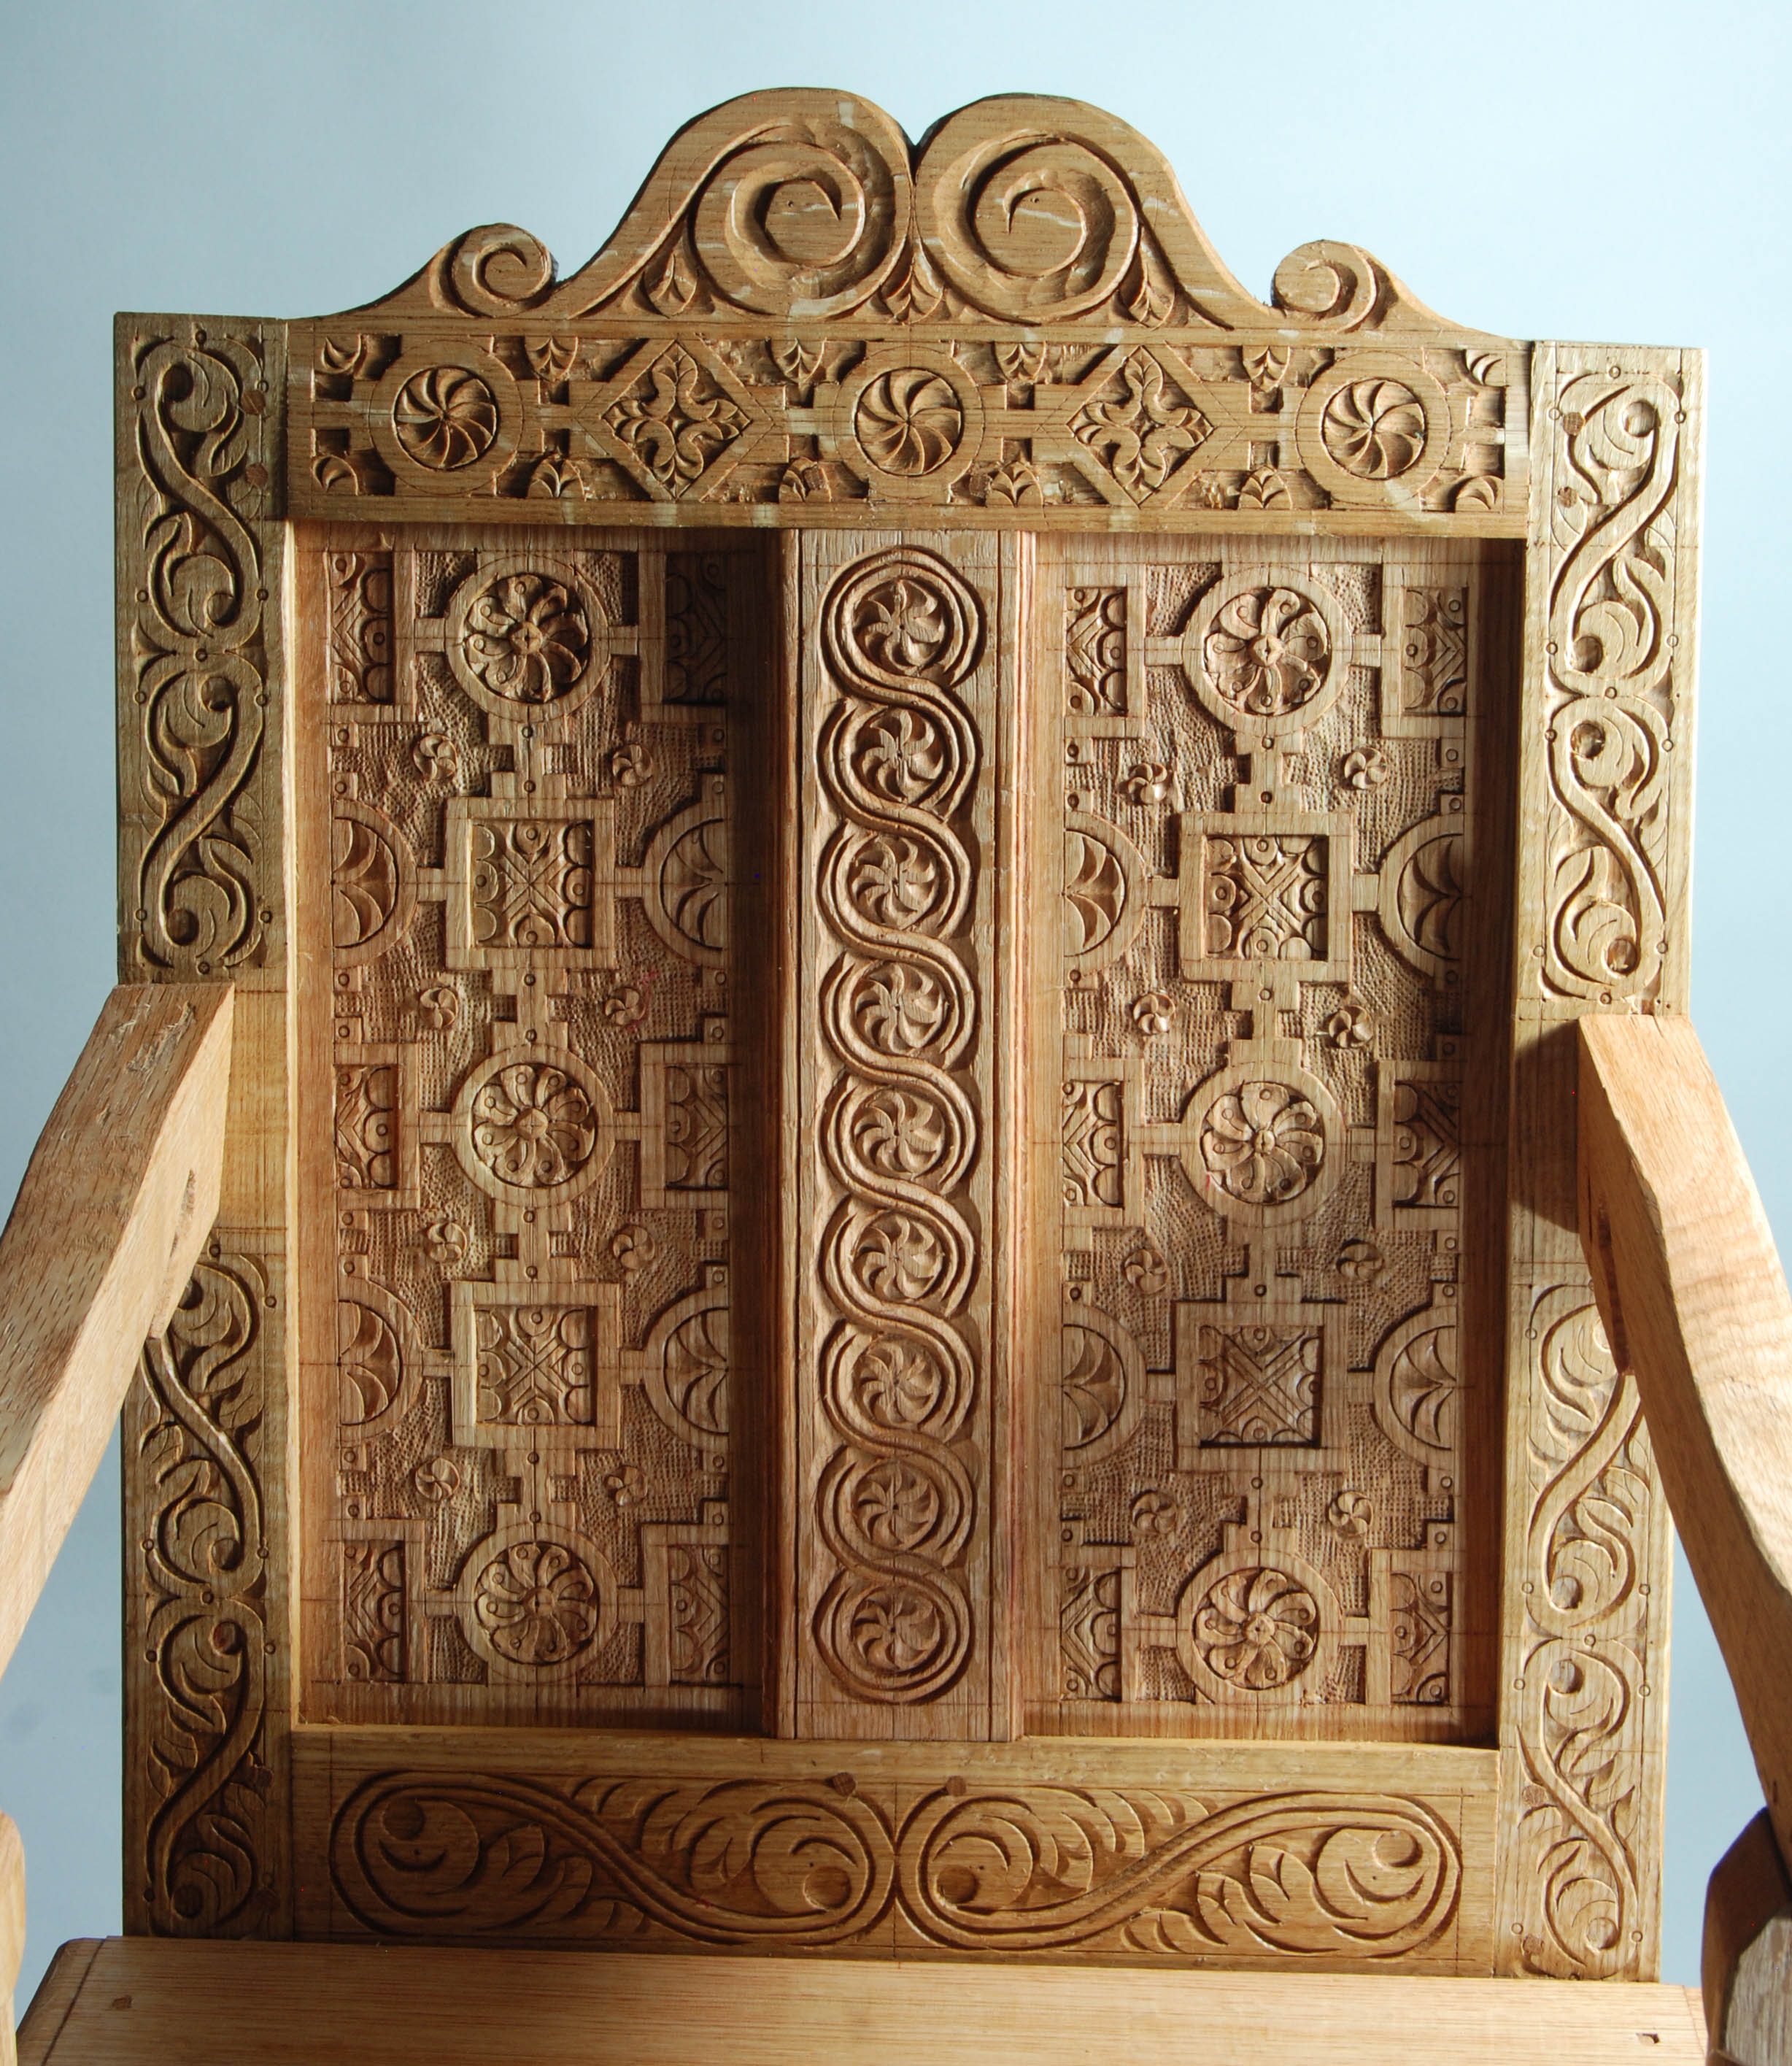 Wood carving designs furniture - Pf Design Overall Rear